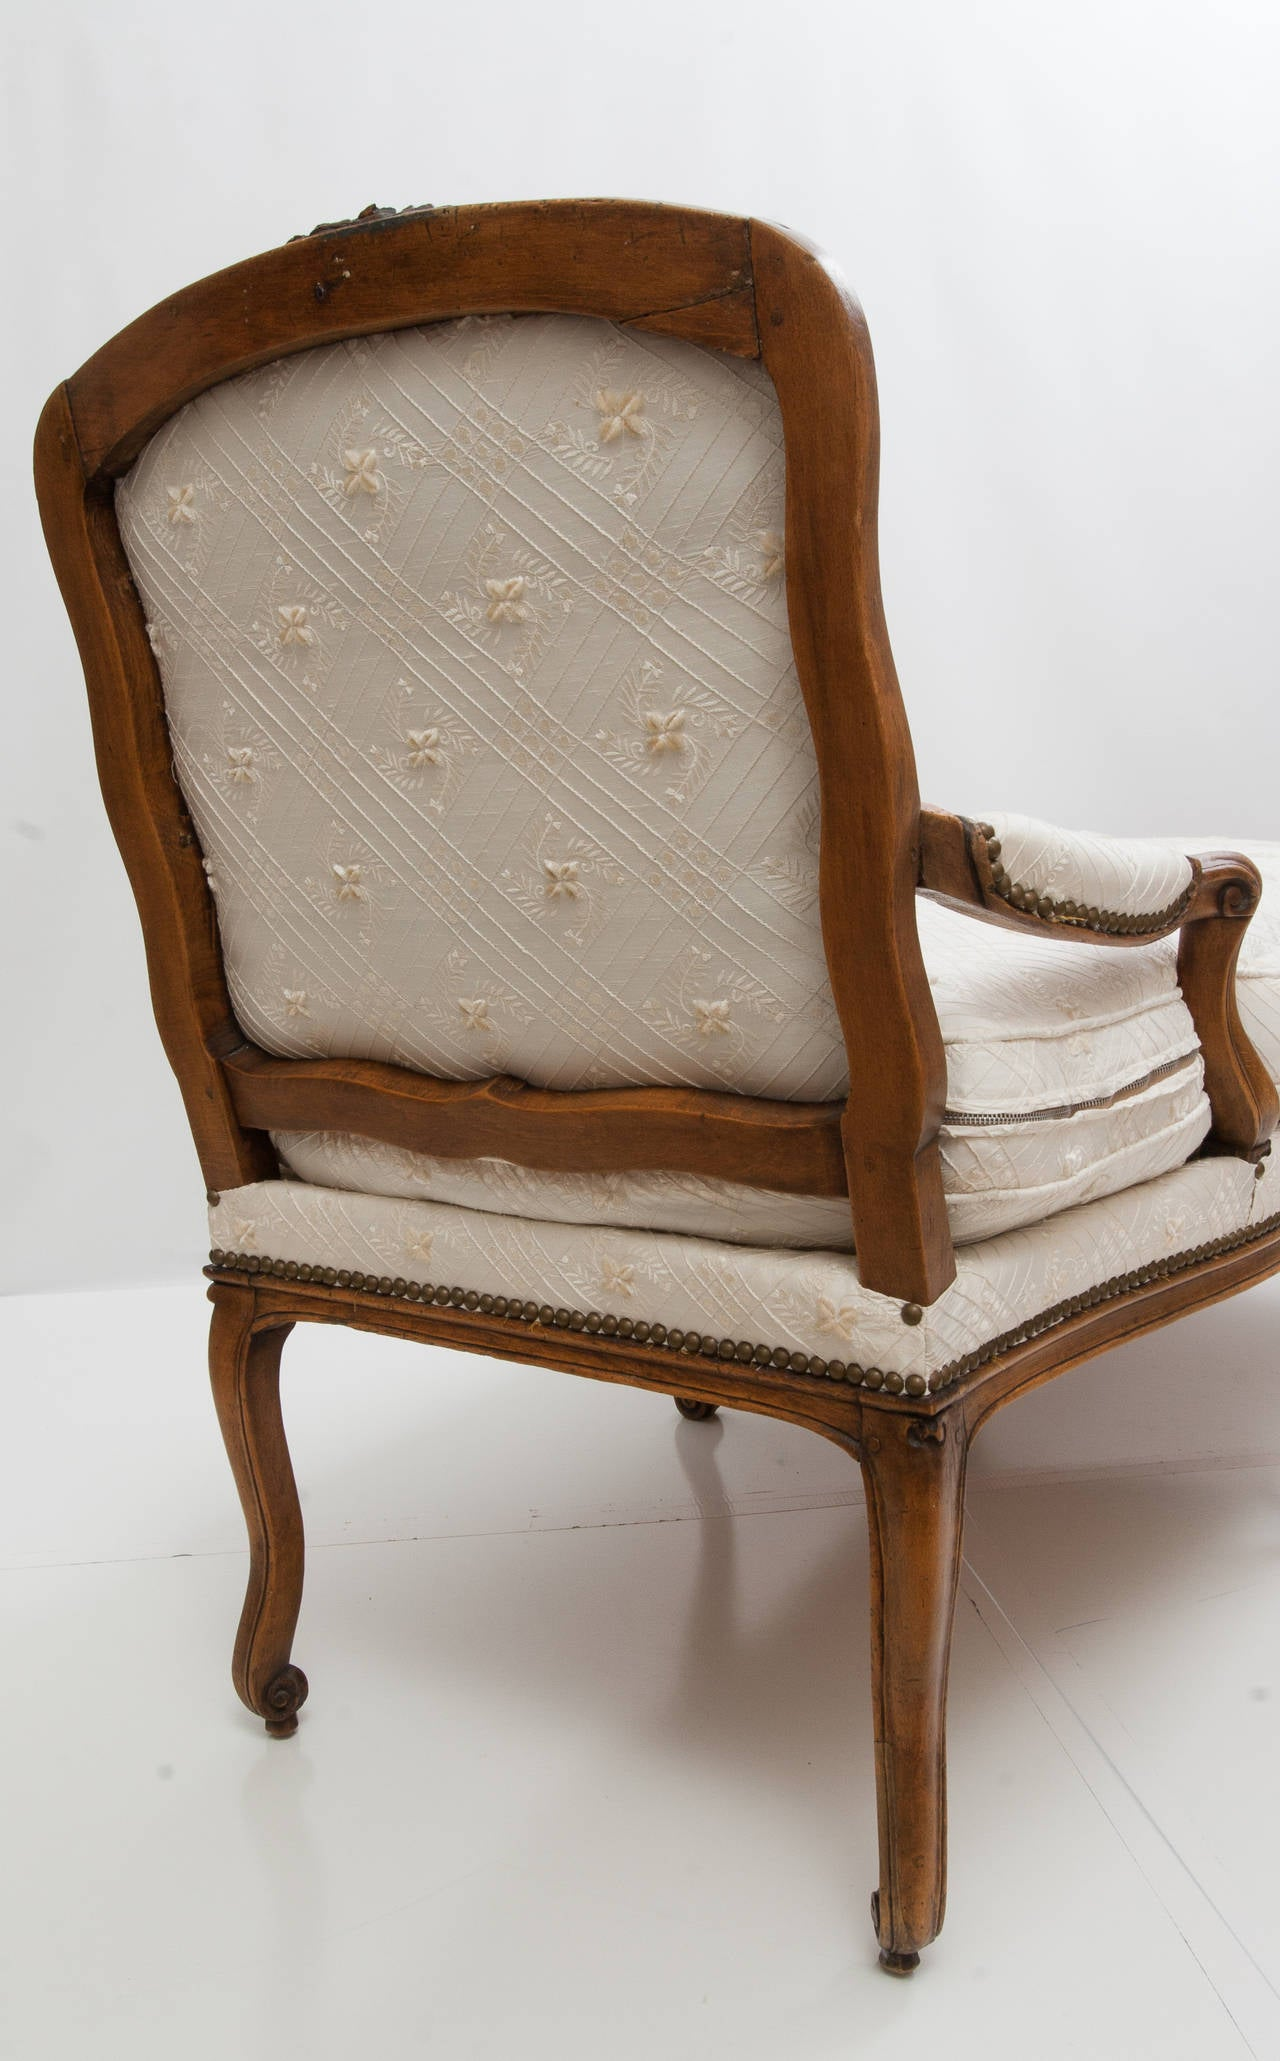 French antique louis xv style chaise lounge for sale at for Antique french chaise lounge